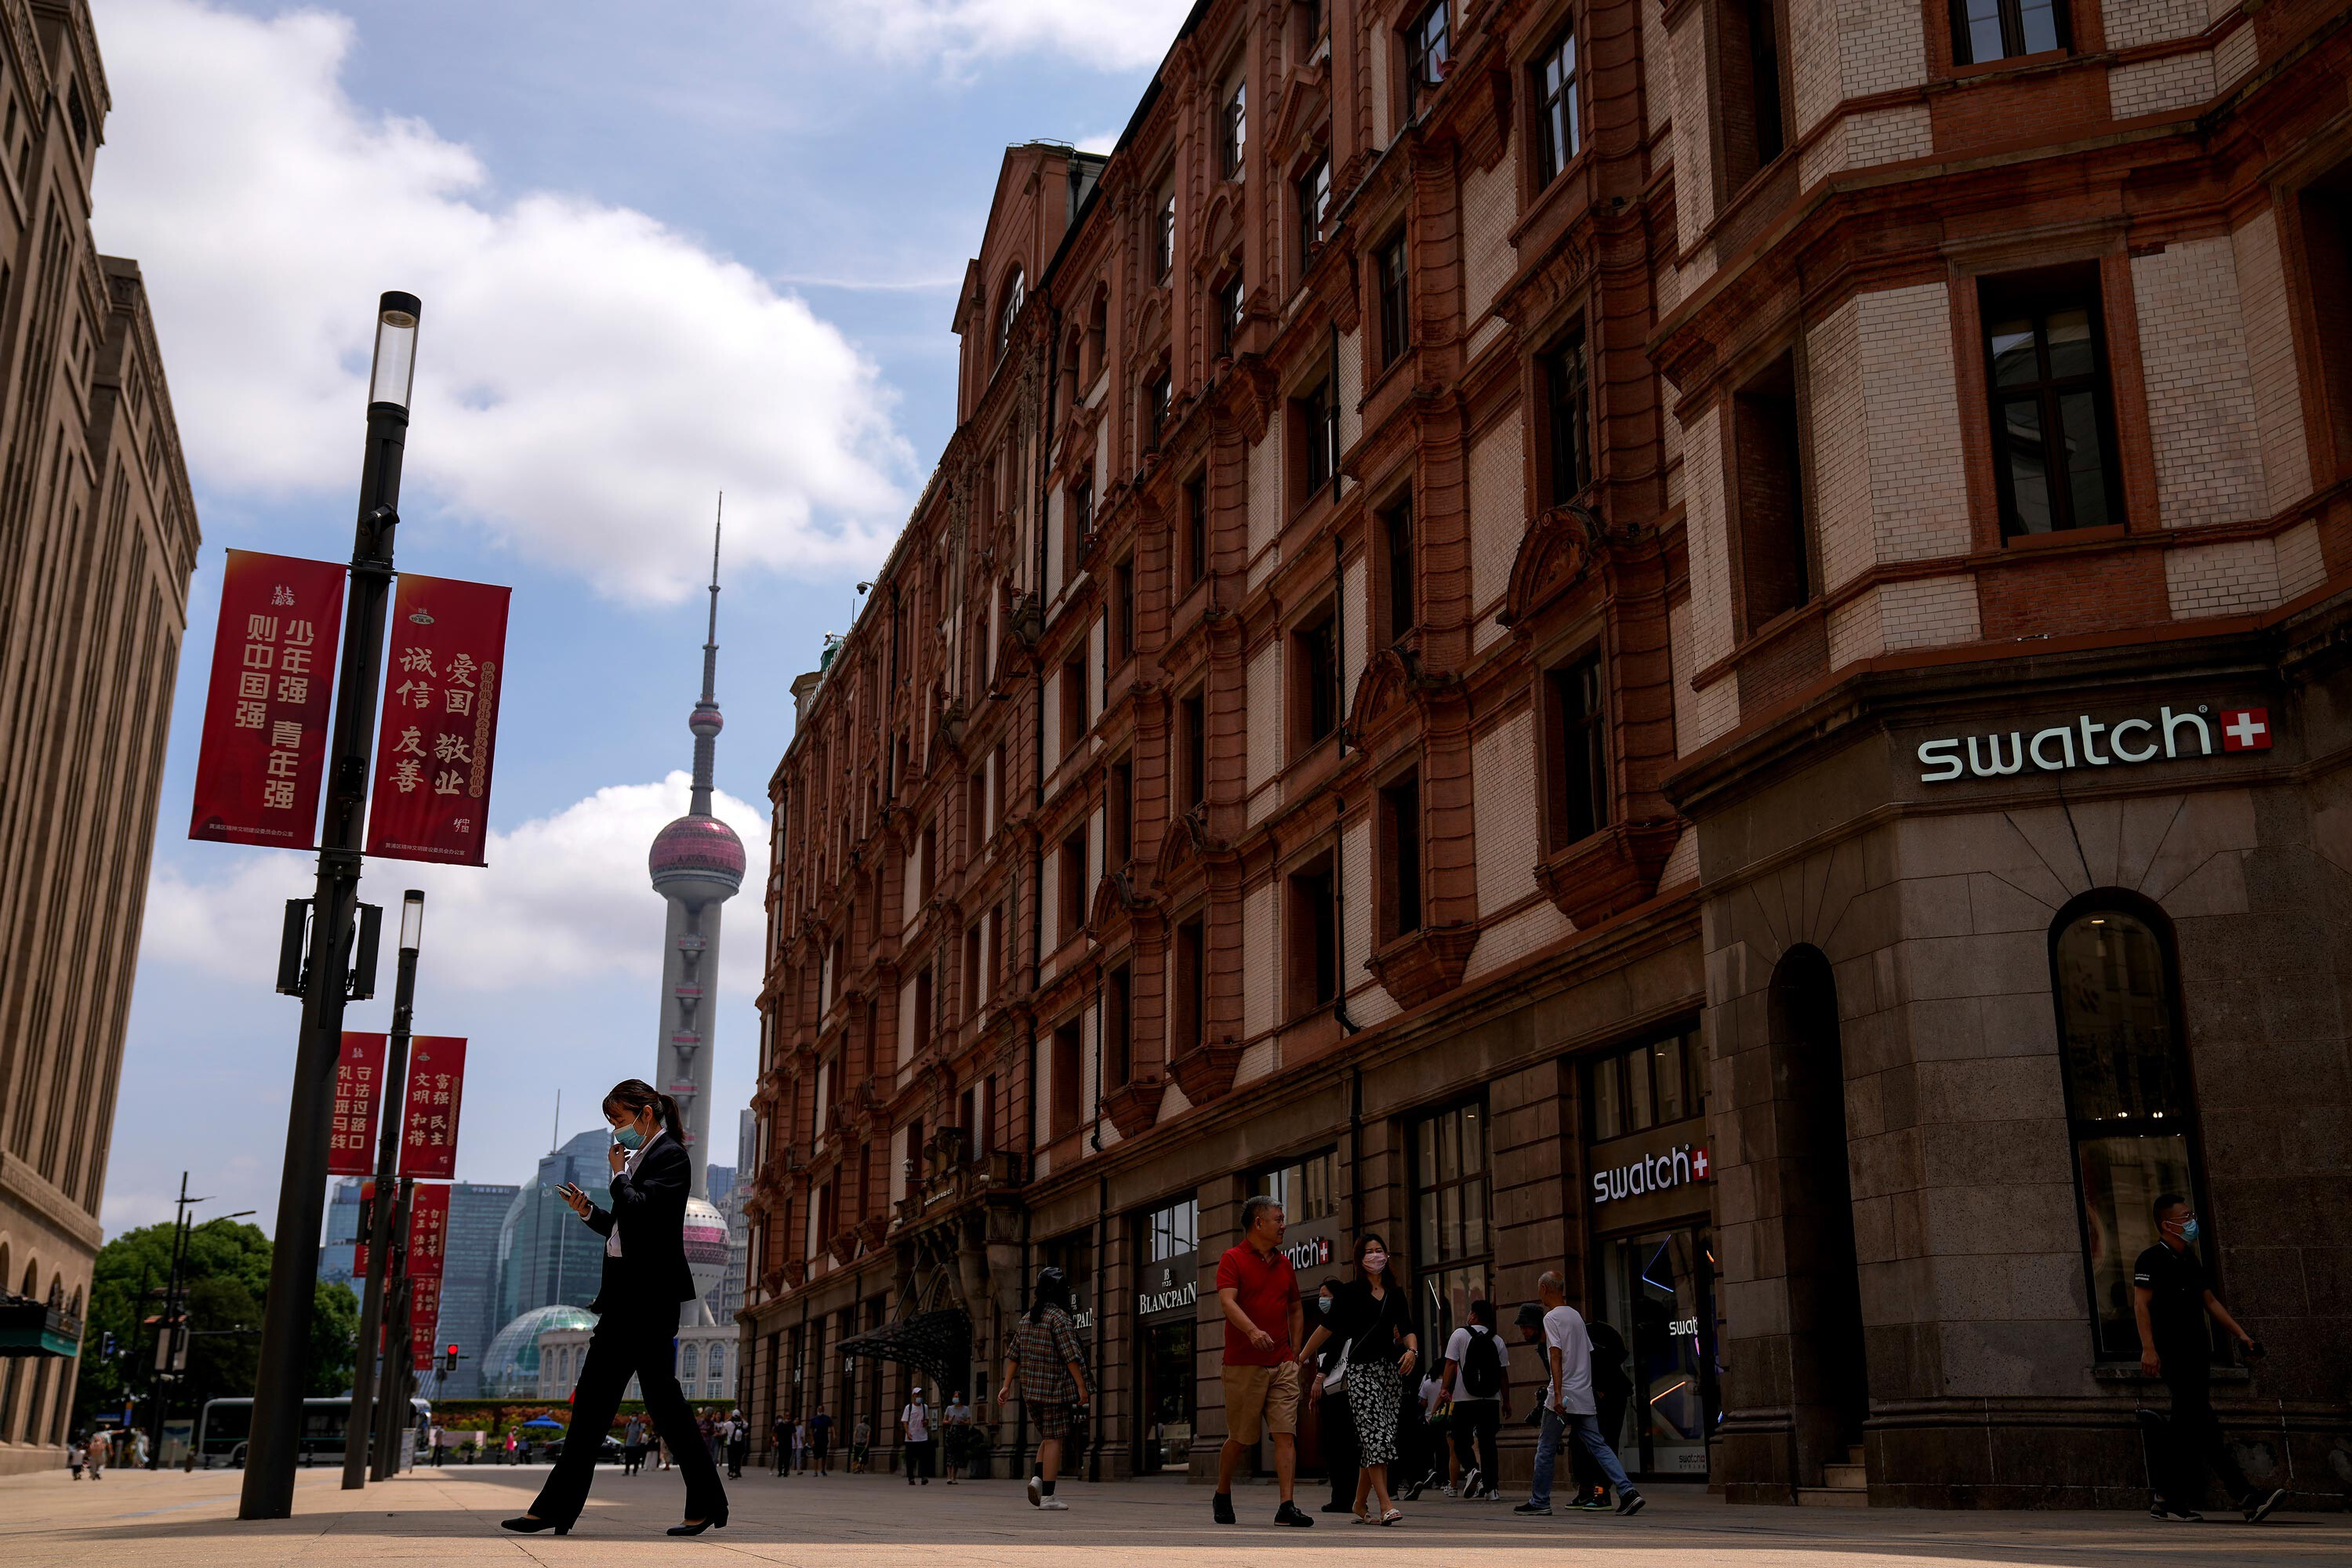 The Delta variant has hit China's economy hard. Now a property crunch is looming